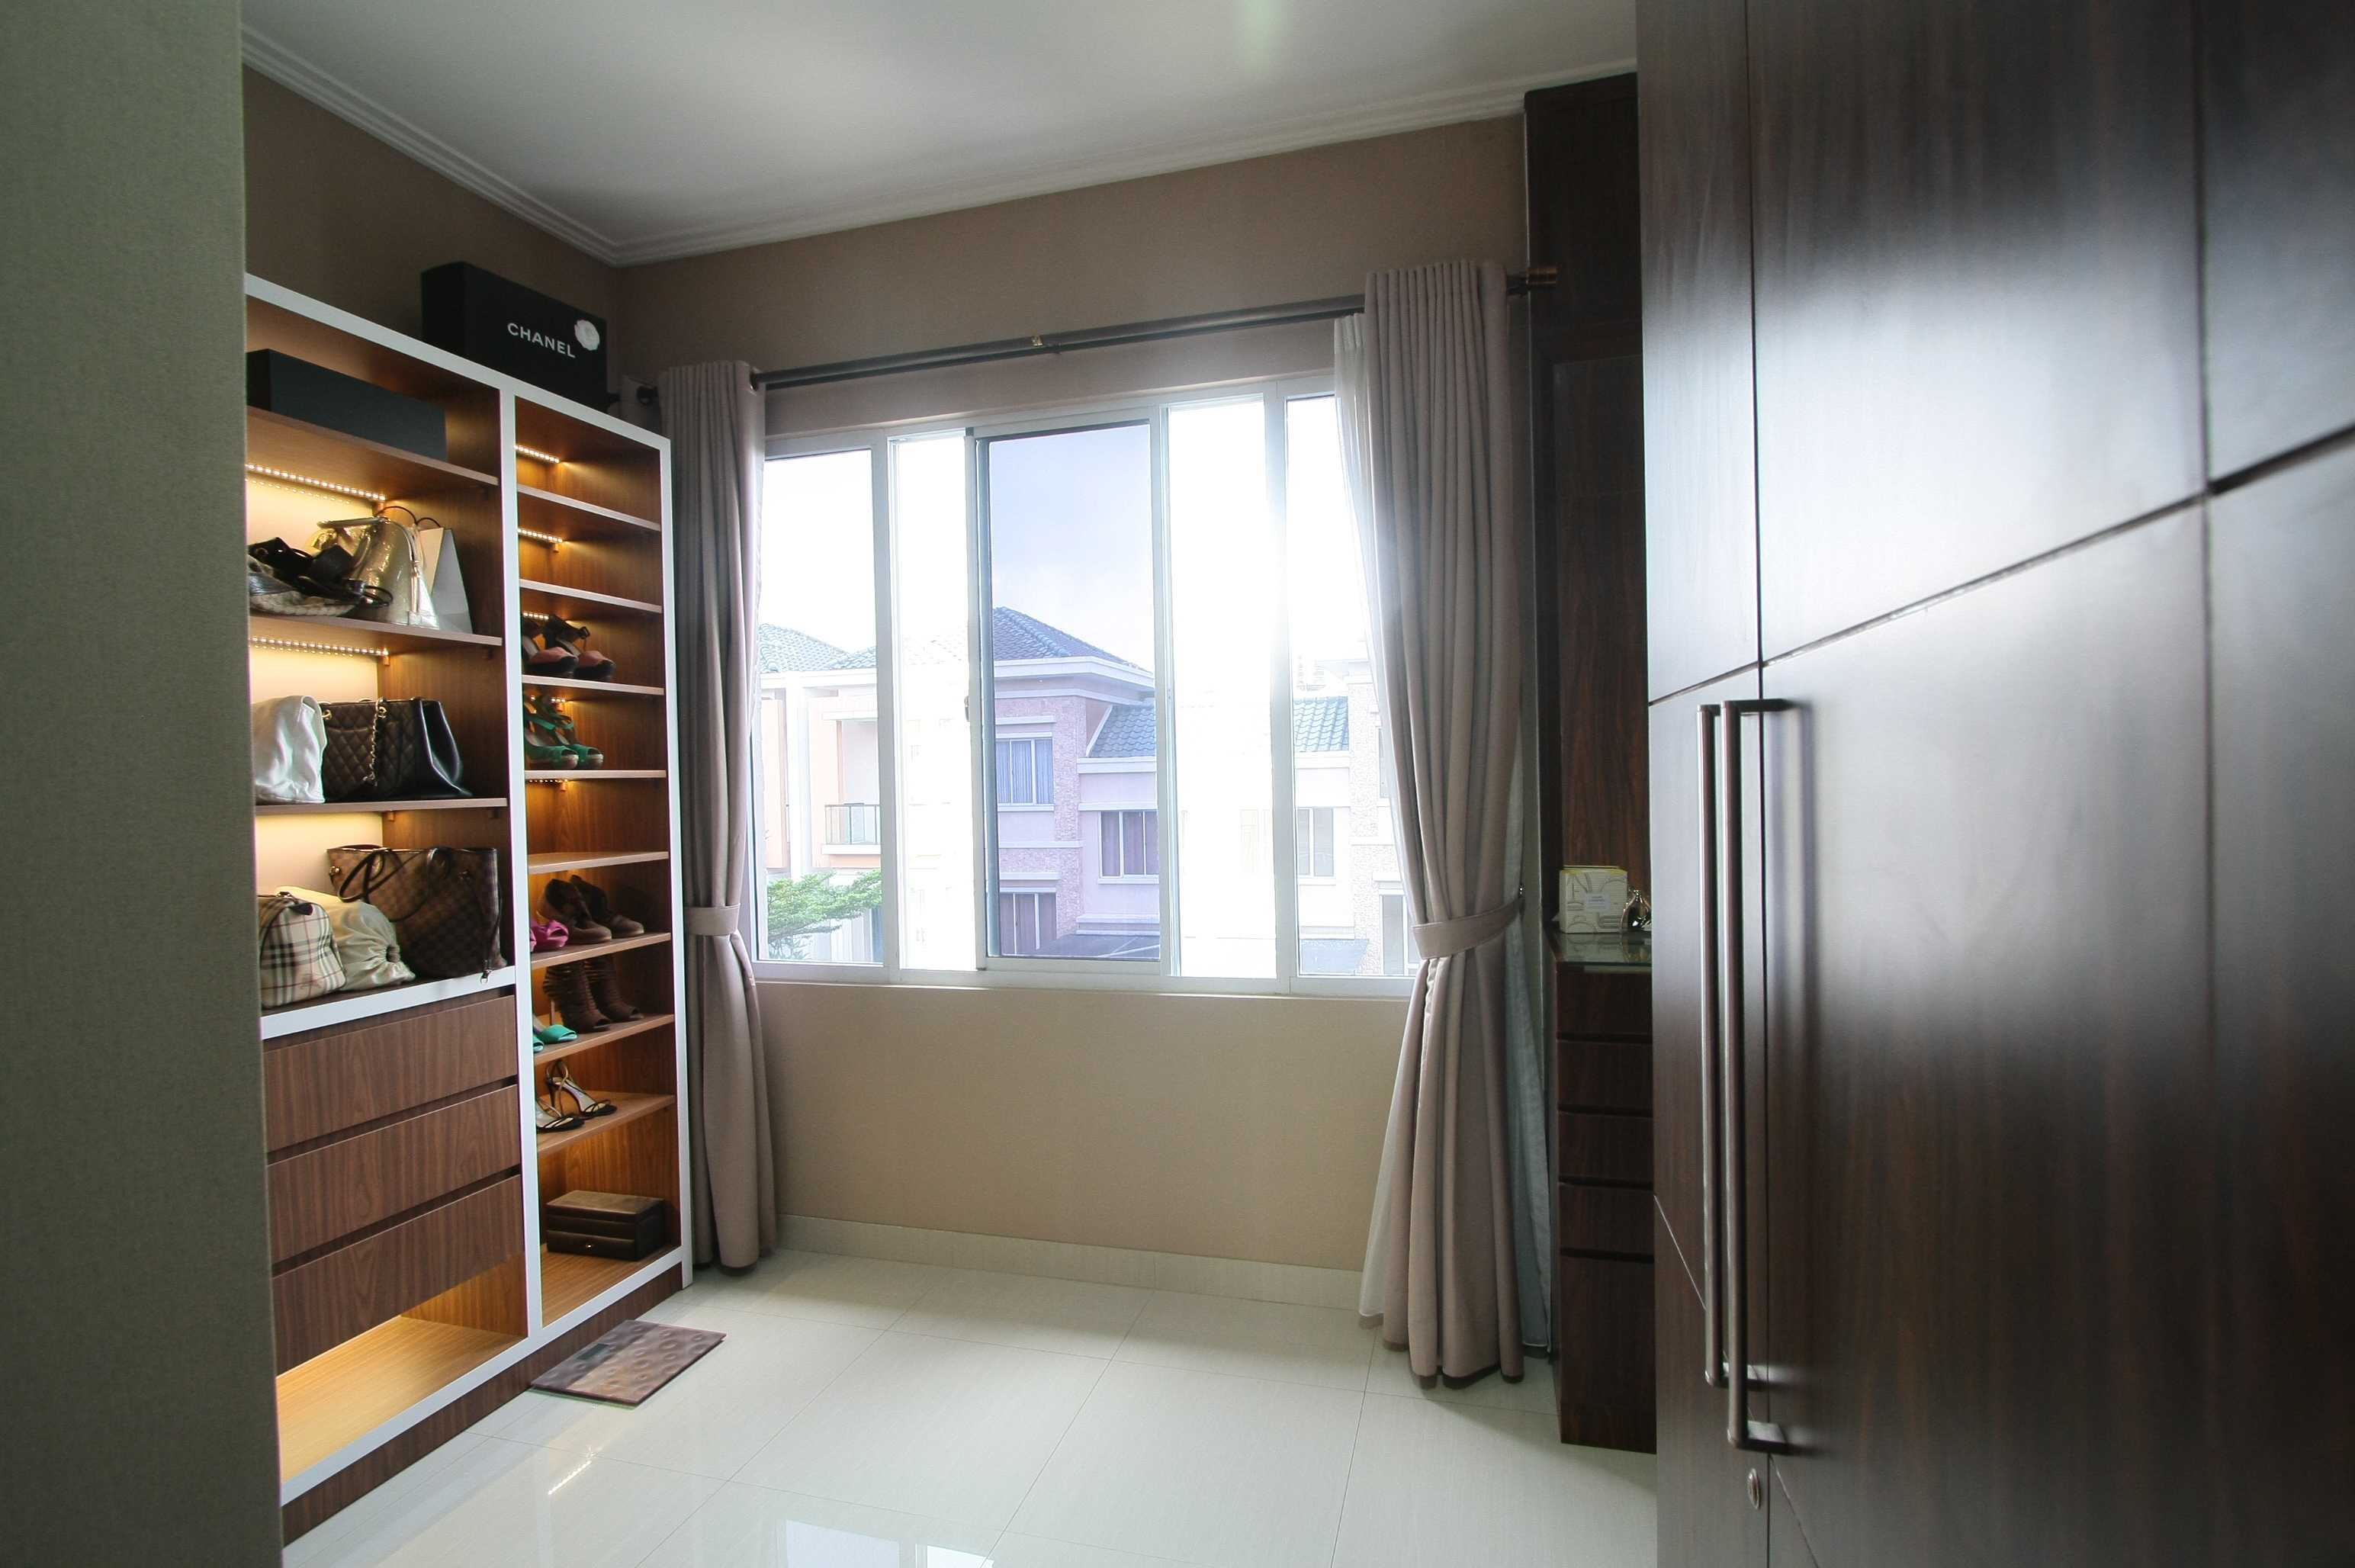 Exxo Interior Grand Galaxy Residence Bekasi Bekasi Dressing Room   28115